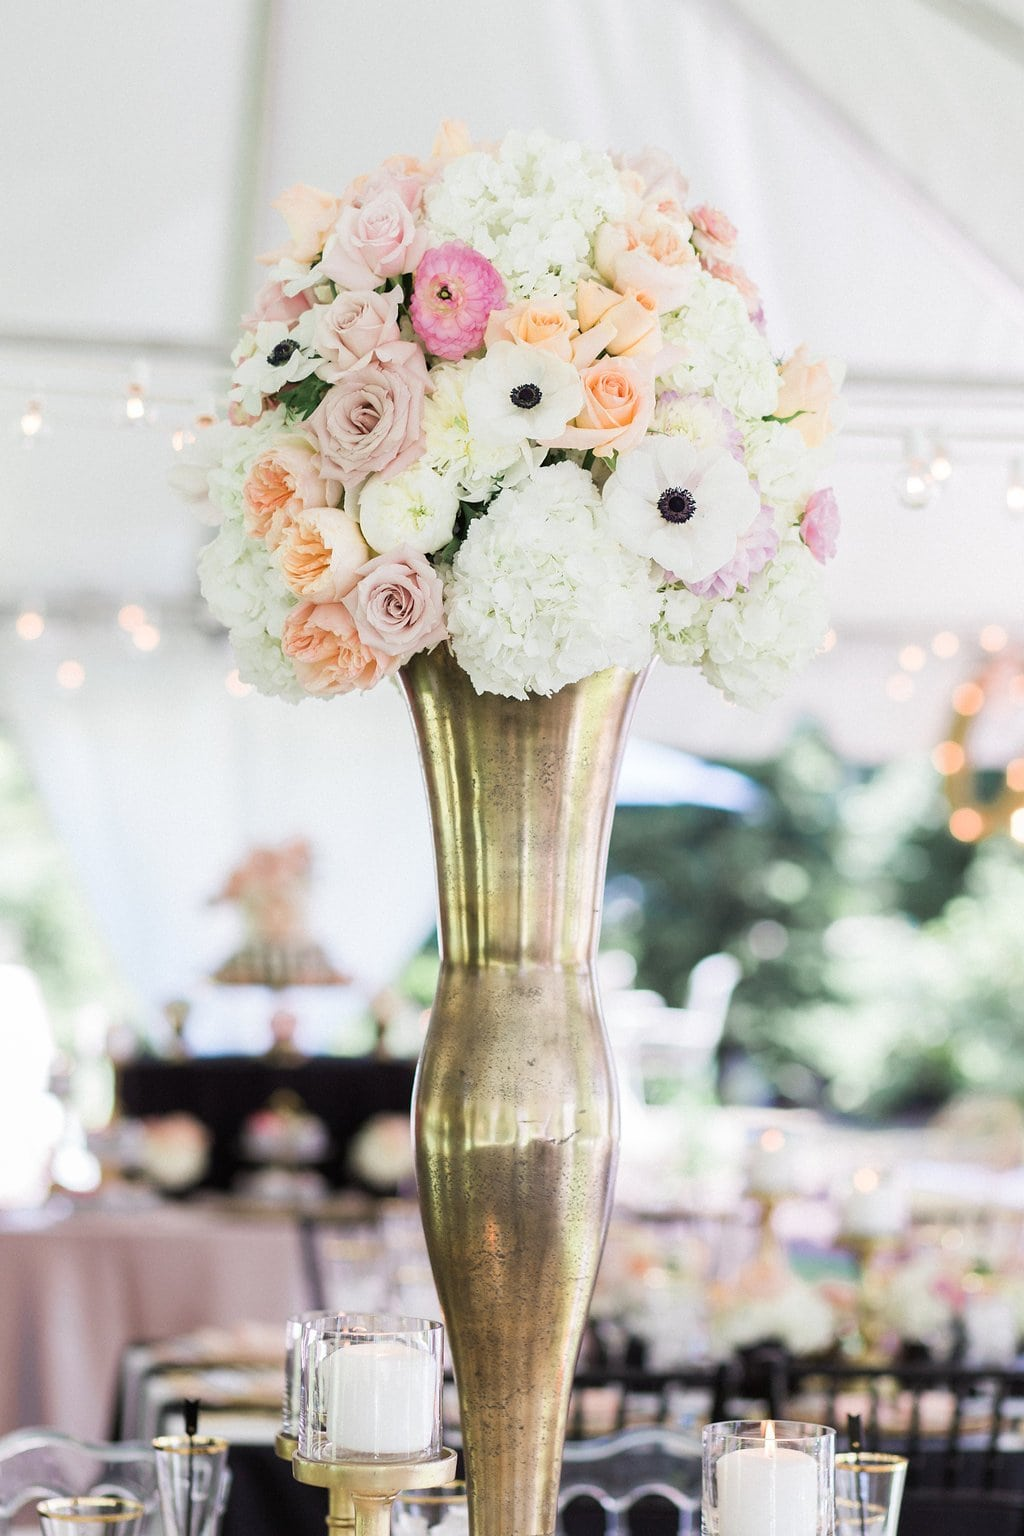 pink and white tall floral arrangements in gold vases - Black & White Kate Spade Inspired Bridal Shower